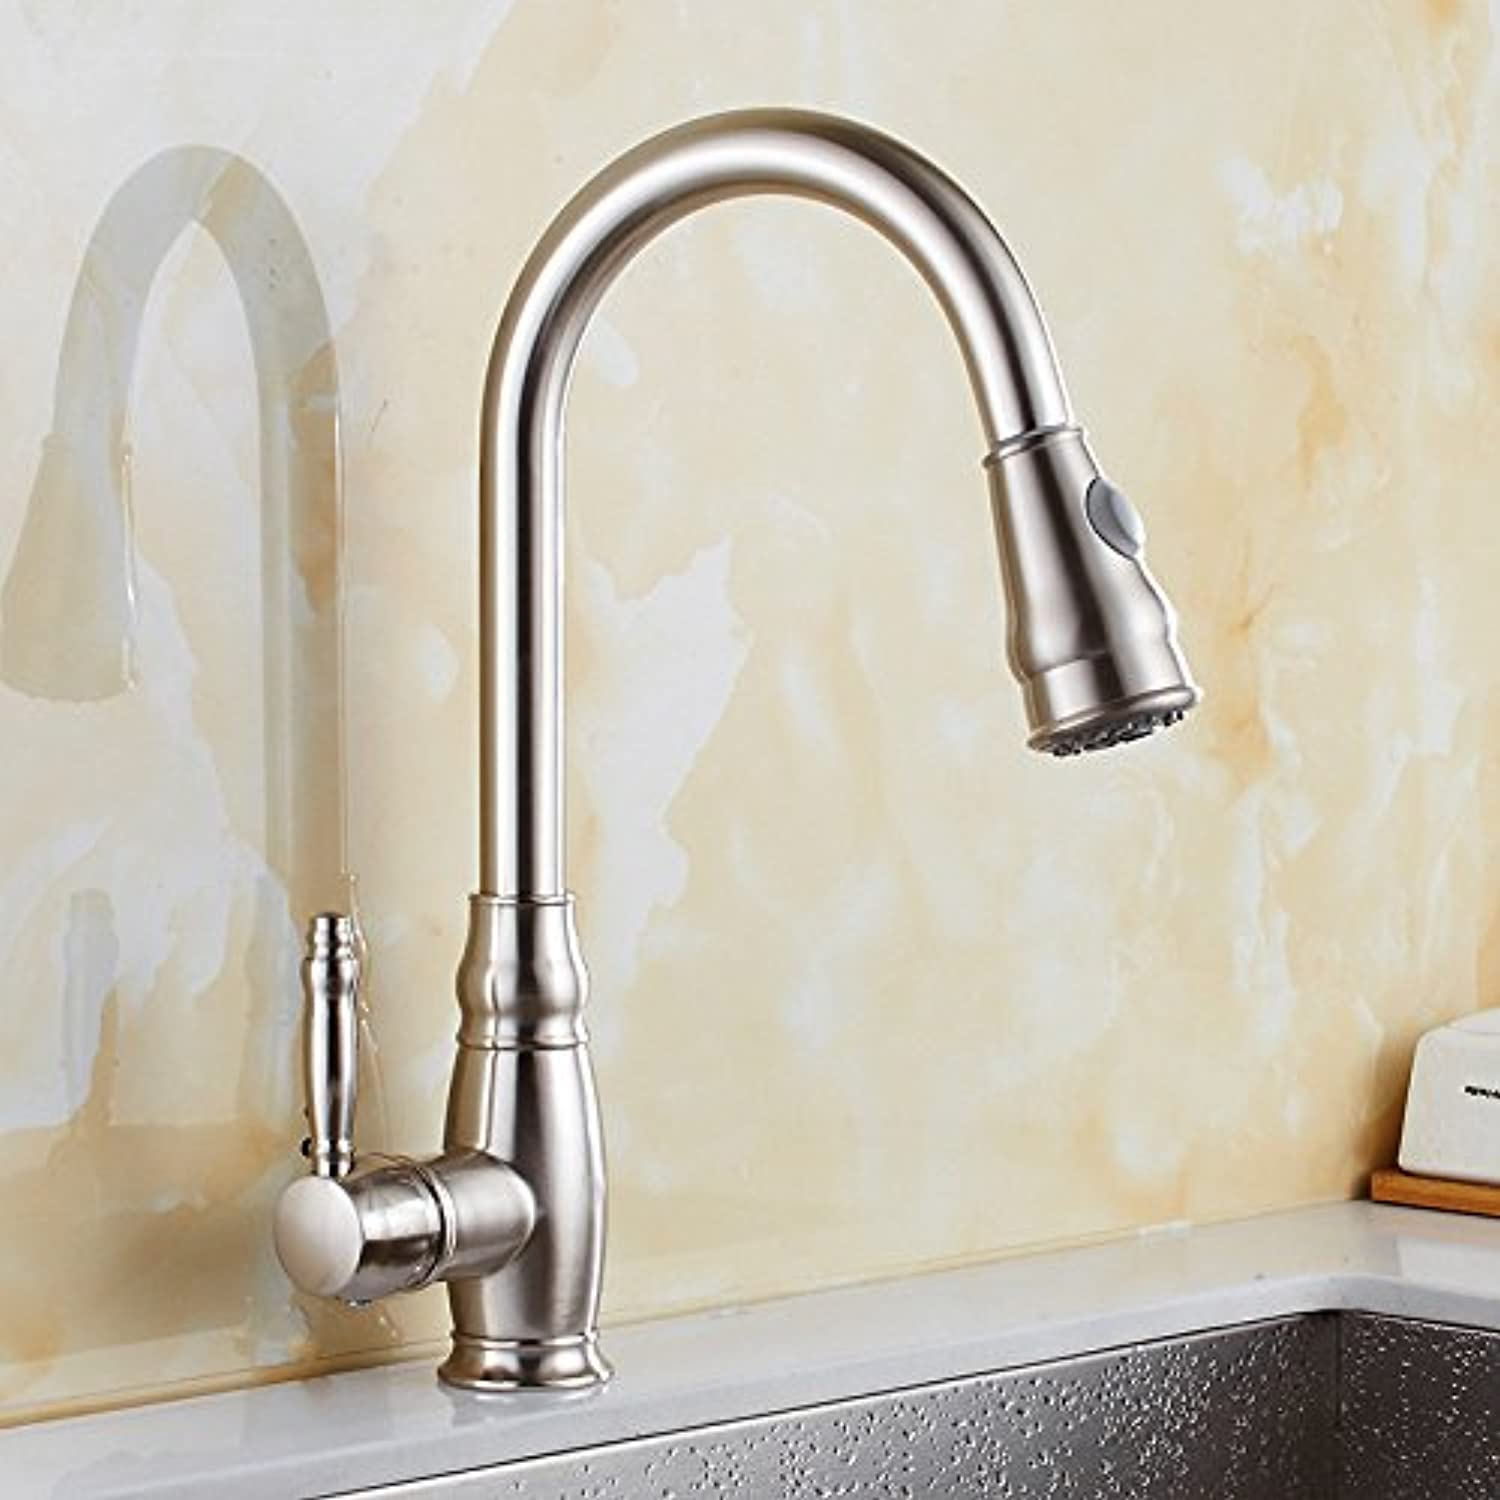 redOOY Taps Faucet Kitchen Sink Sink Brushed Kitchen Hot And Cold Faucet Sink Sink Faucet